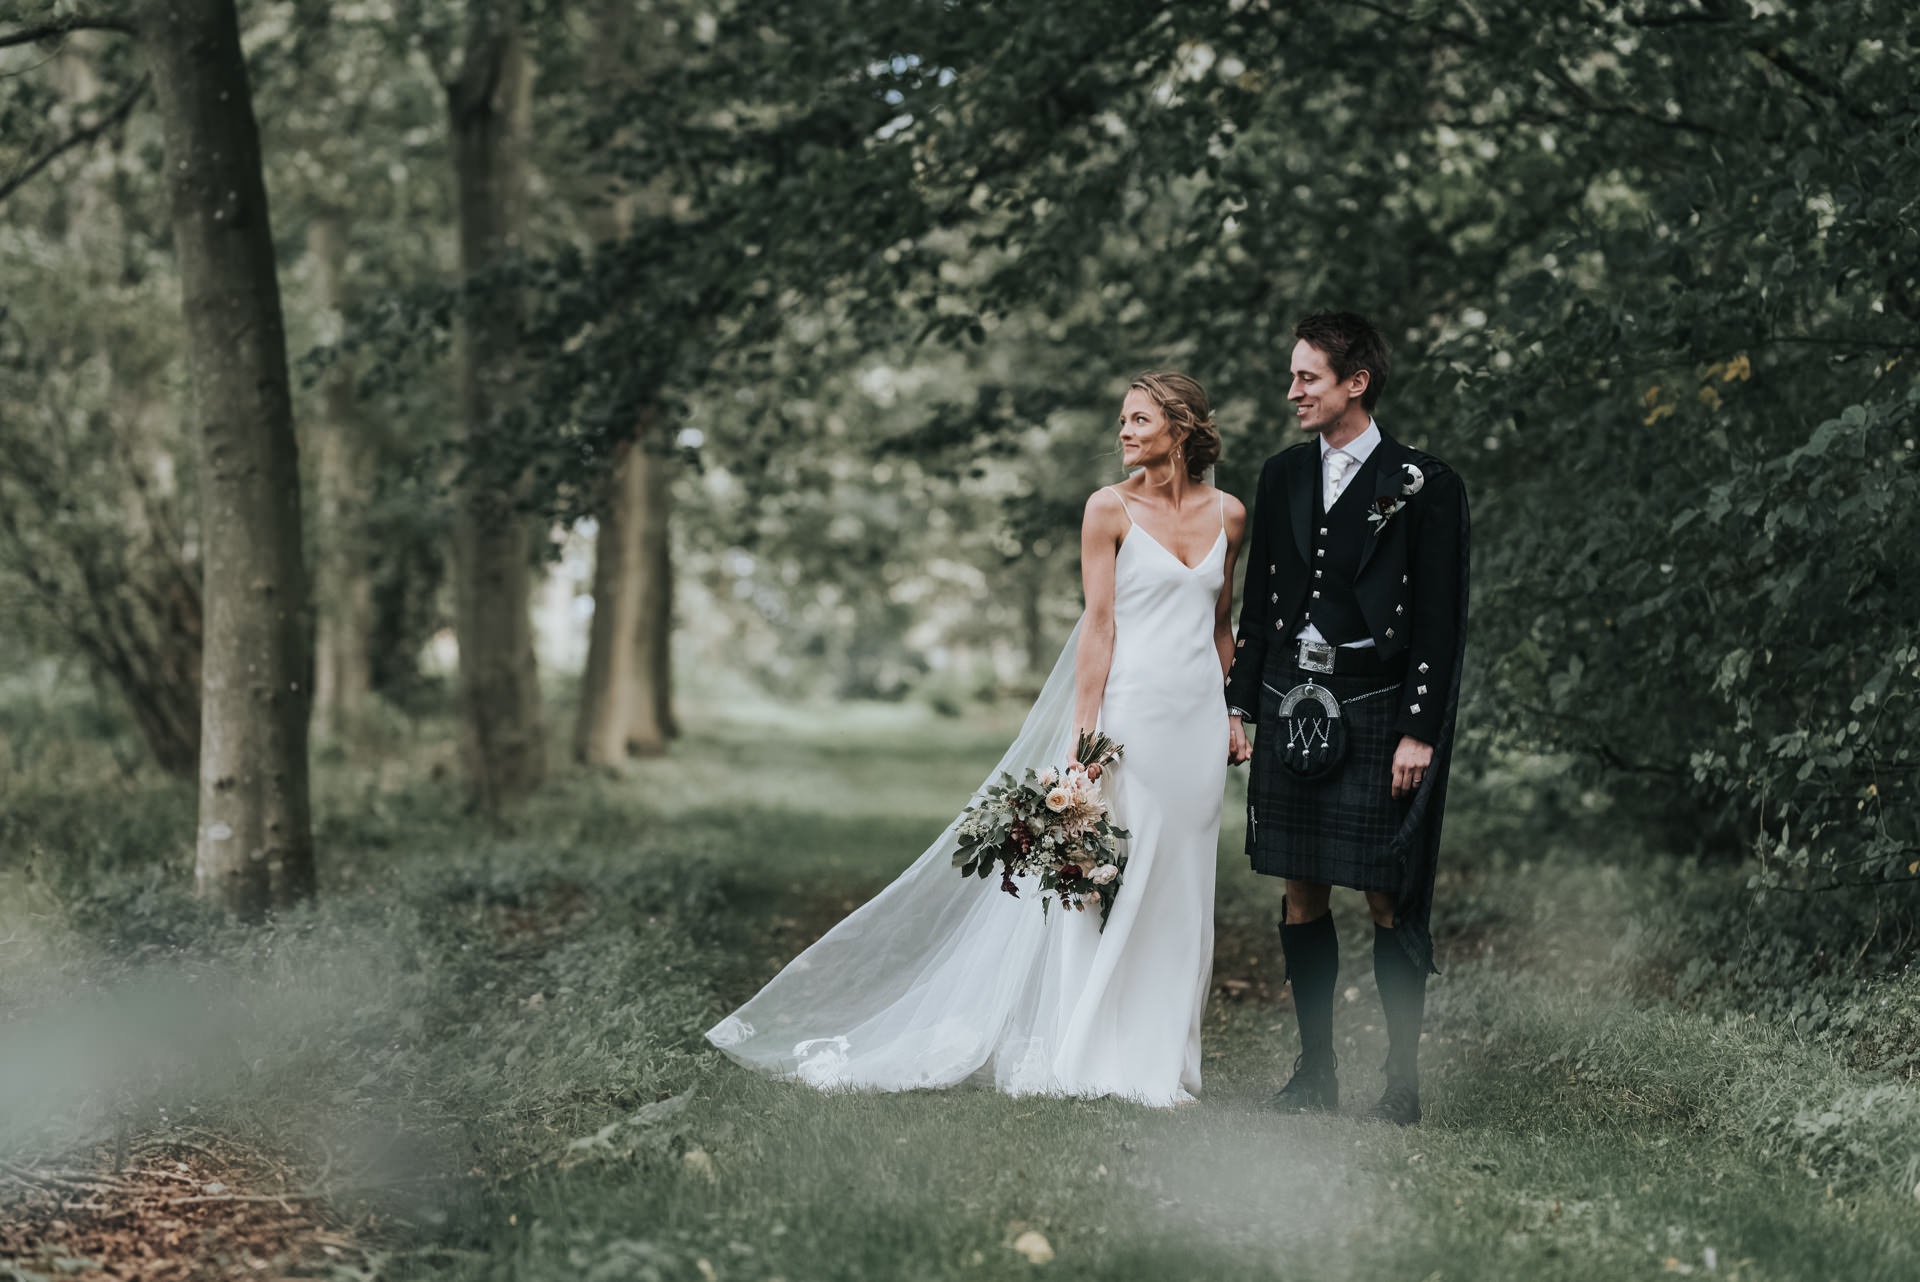 Wedderburn Barns wedding photos, wedding Wedderburn Barns, wedding photographer Edinburgh, wedding photographer Scotland, wedding photographer Glasgow, Karol Makula Photography, wedding photography Scotland, Scotland wedding photographer